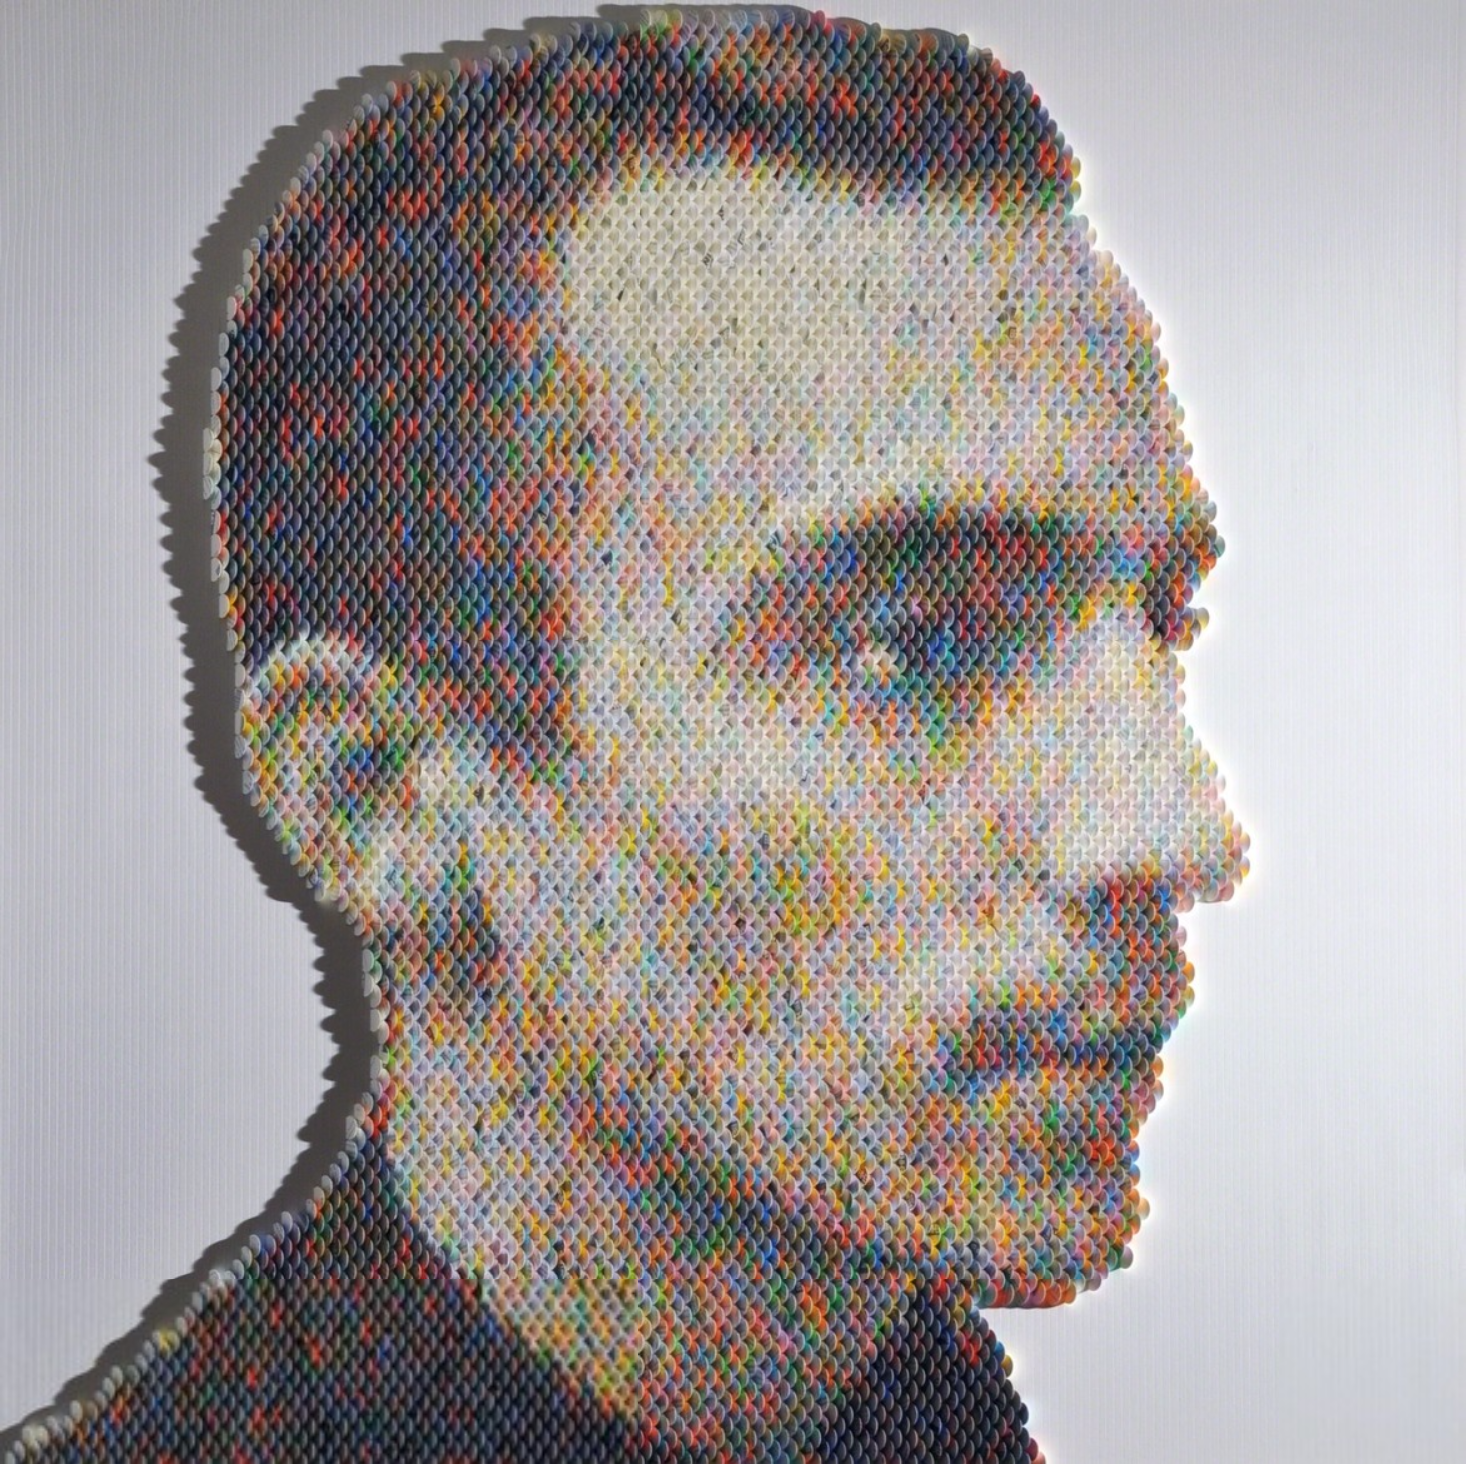 New Portraits Made From Hundreds of Punched Paint Chips - Pete De Vooght